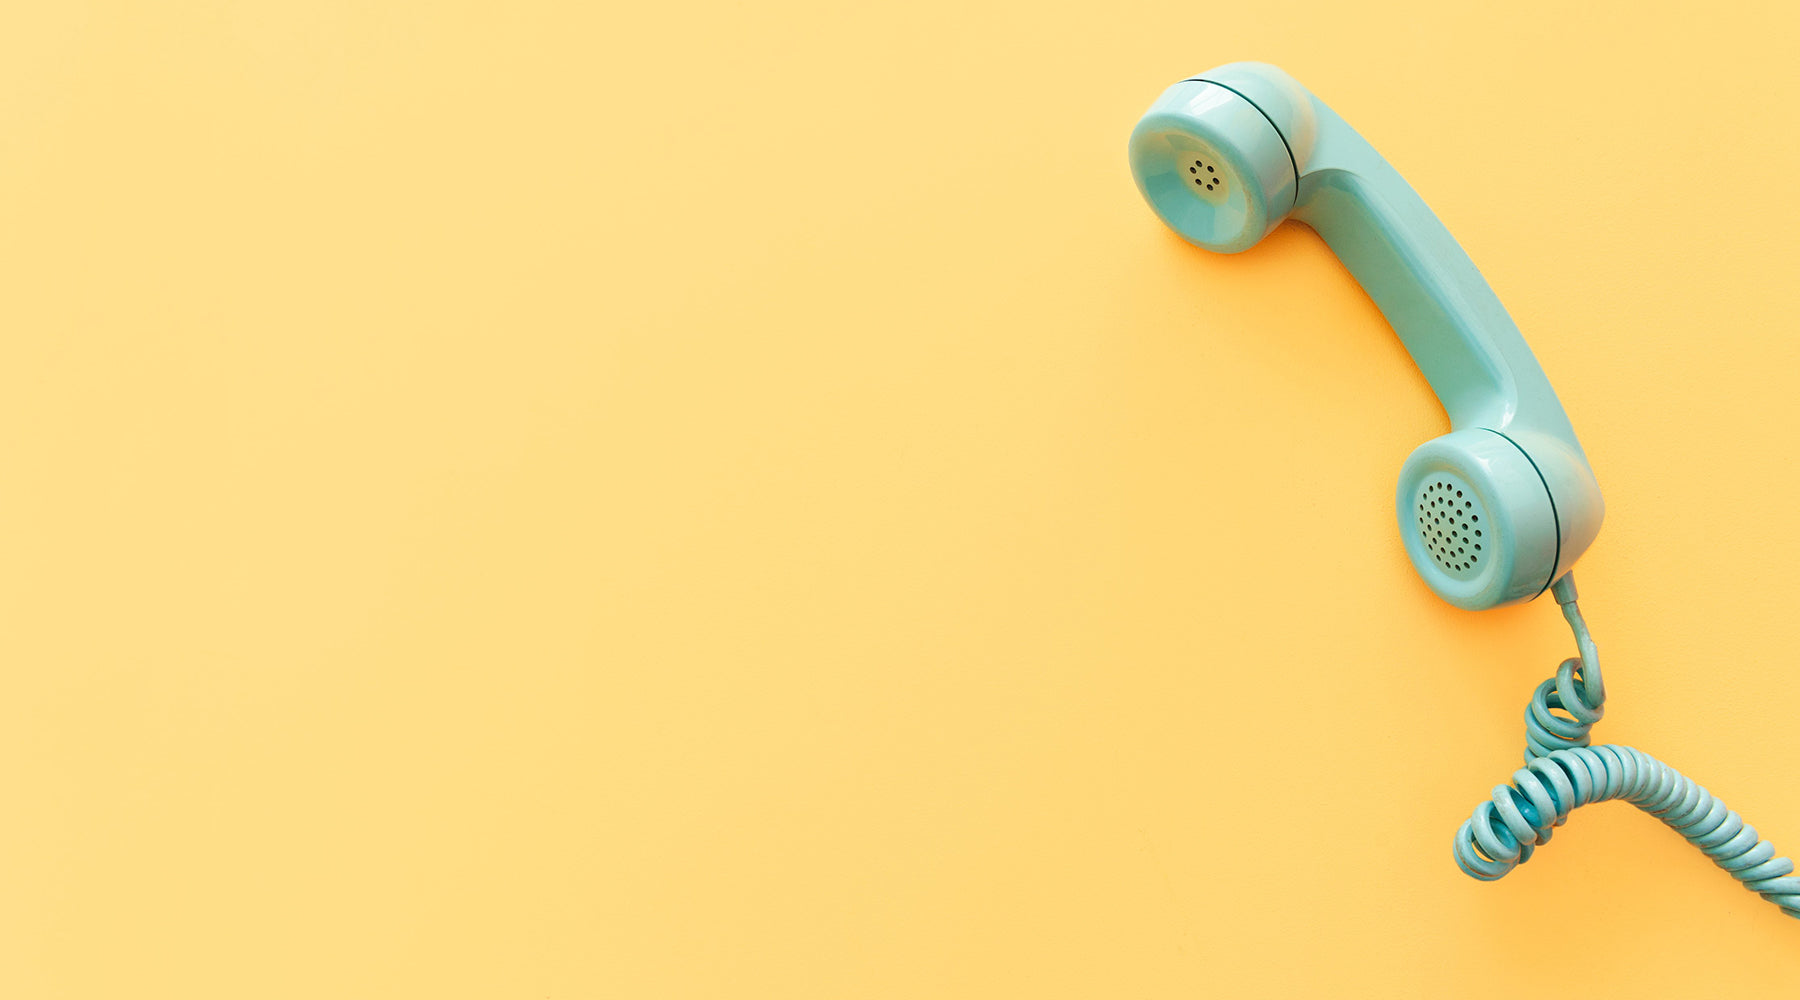 Teal telephone on mustard yellow background |  Nikki Darling Australia